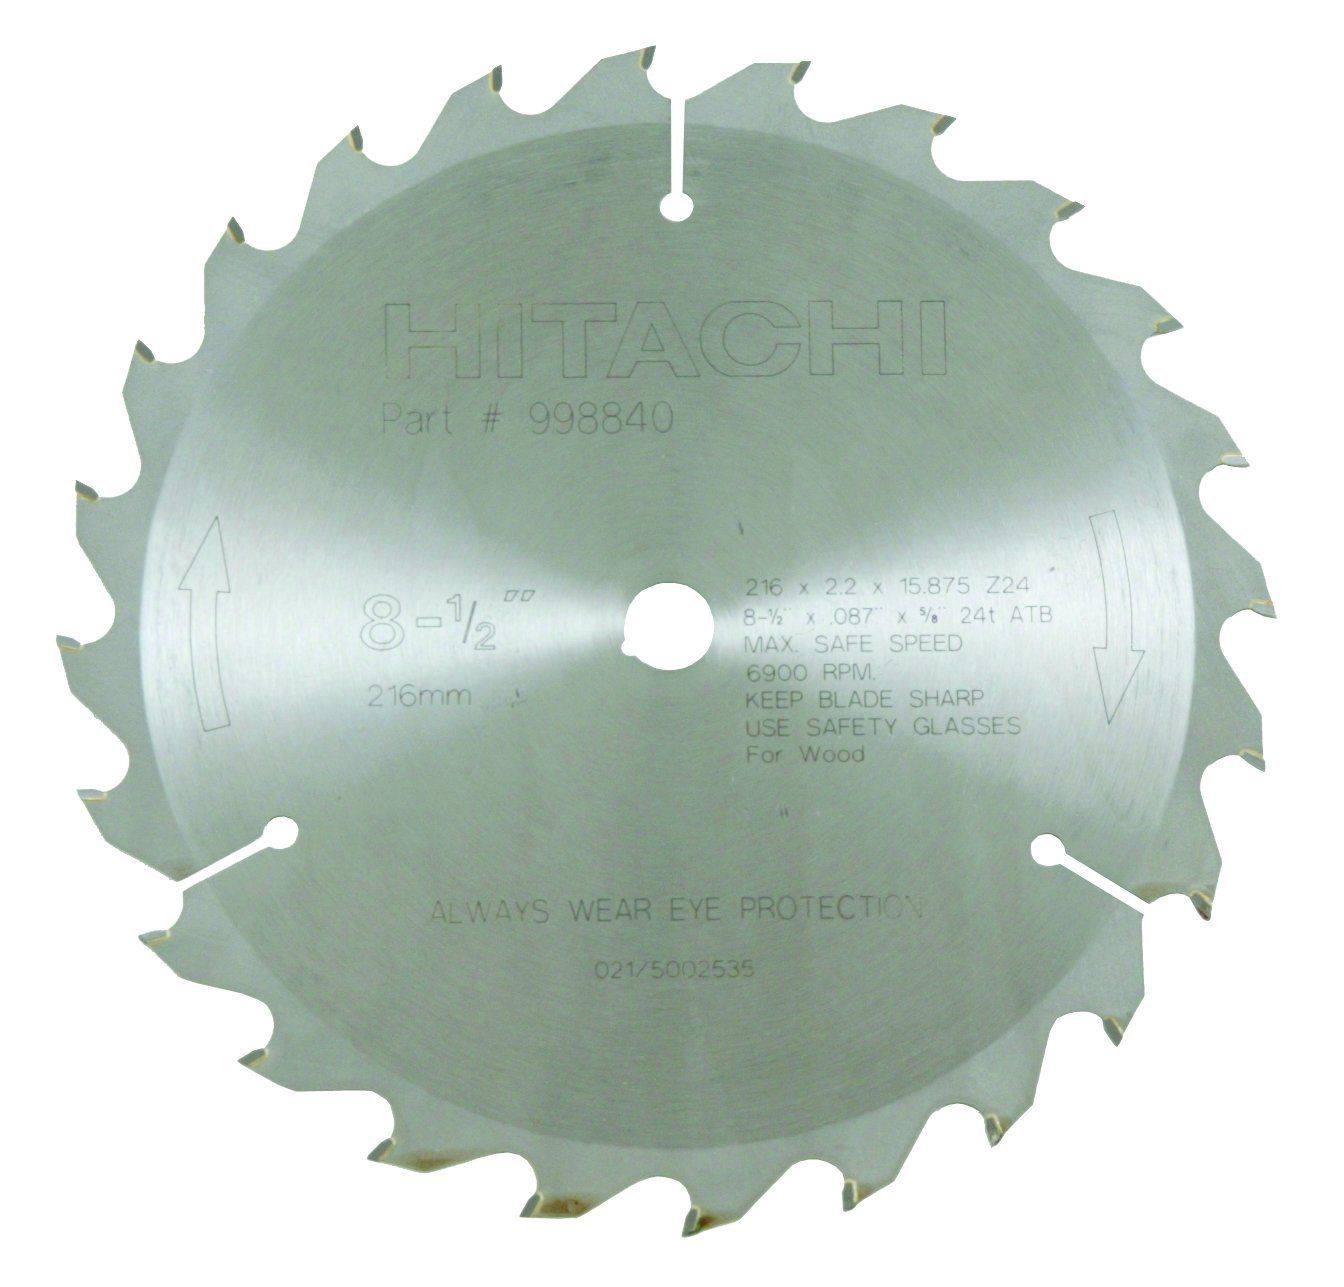 Hitachi 998840 24teeth Tungsten Carbide Tipped 81 2inch Atb 5 8inch Arbor Finish Saw Blade Find Out Extra By Going To In 2020 Circular Saw Blades Saw Blade Hitachi